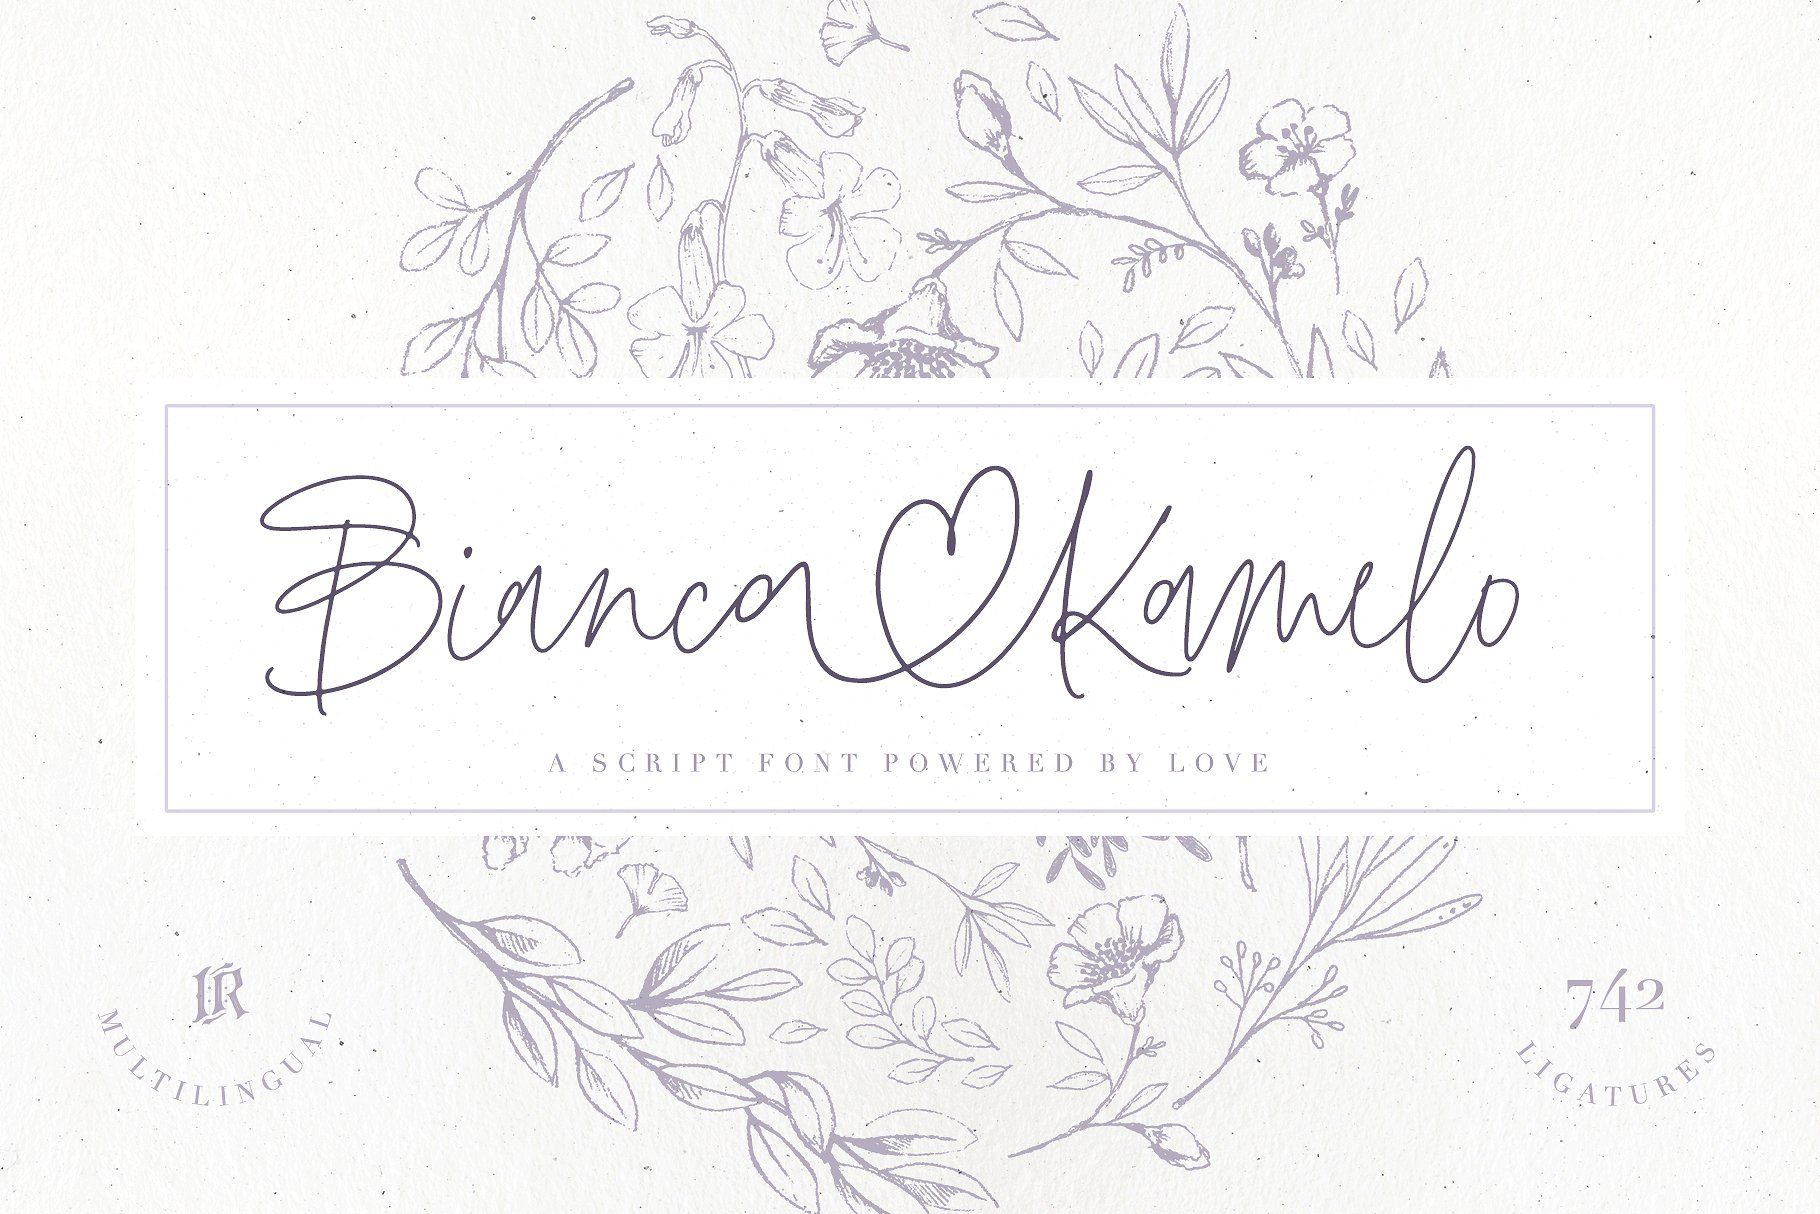 "Bianca Kamelo Font Bianca Kamelo Font is a modern hand-lettered font with 67 STANDARD LIGATURES and unique 676 ""LOVE LIGATURES"" which connect names with style. The font includes multilingual support for Western and Central Europe. Is ideal for weddings invitations, baby showers, blog website, Instagram, branding, invitations, business cards, and many more. This font also includes a complete set of alternates for uppercase and lowercase characters and stylistic ends for lowercase characters. Buy Now $8"